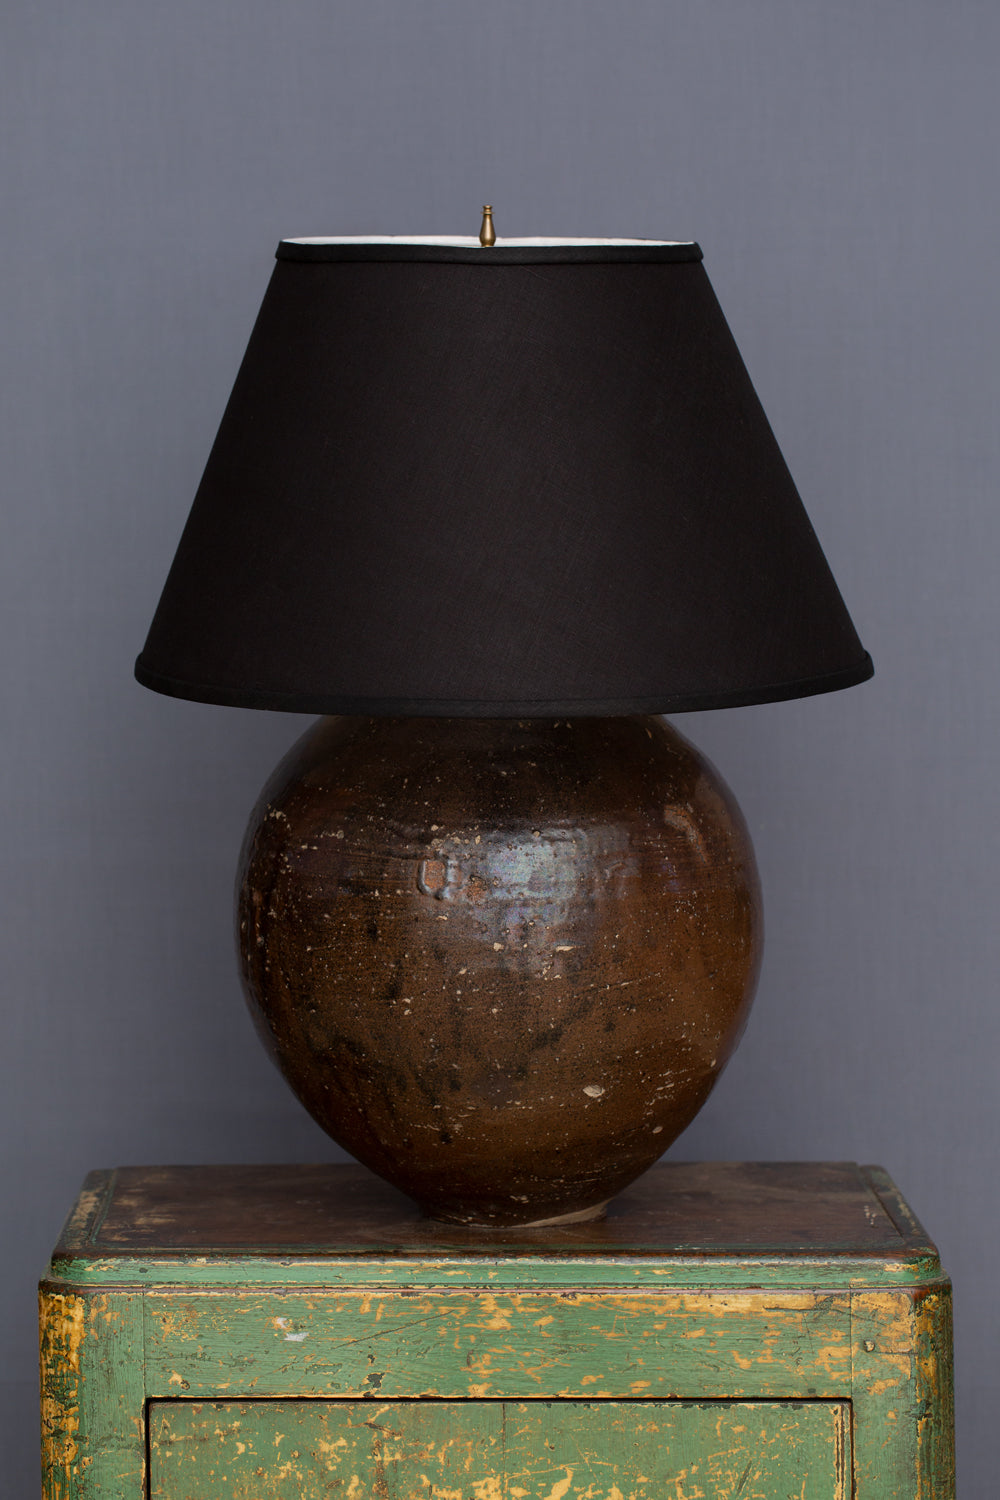 18th Century Chinese Export Jar Converted into a Lamp Base